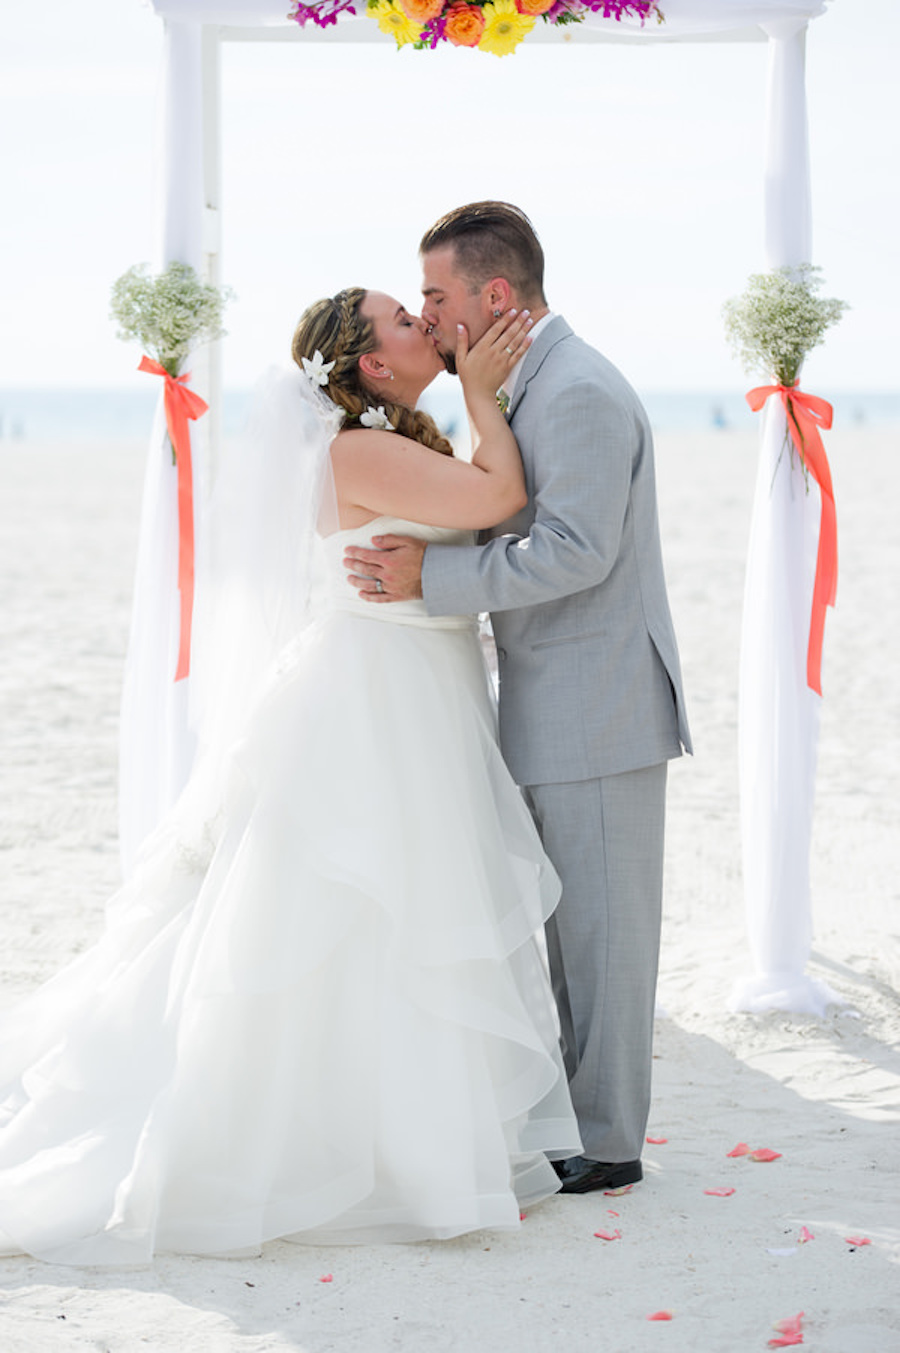 St. Pete Beach Wedding Ceremony First Kiss Portriat with Bride in Strapless White Wedding Ballgown and Groom with Grey Suit  St. Pete Wedding Photographer Andi Diamond Photography